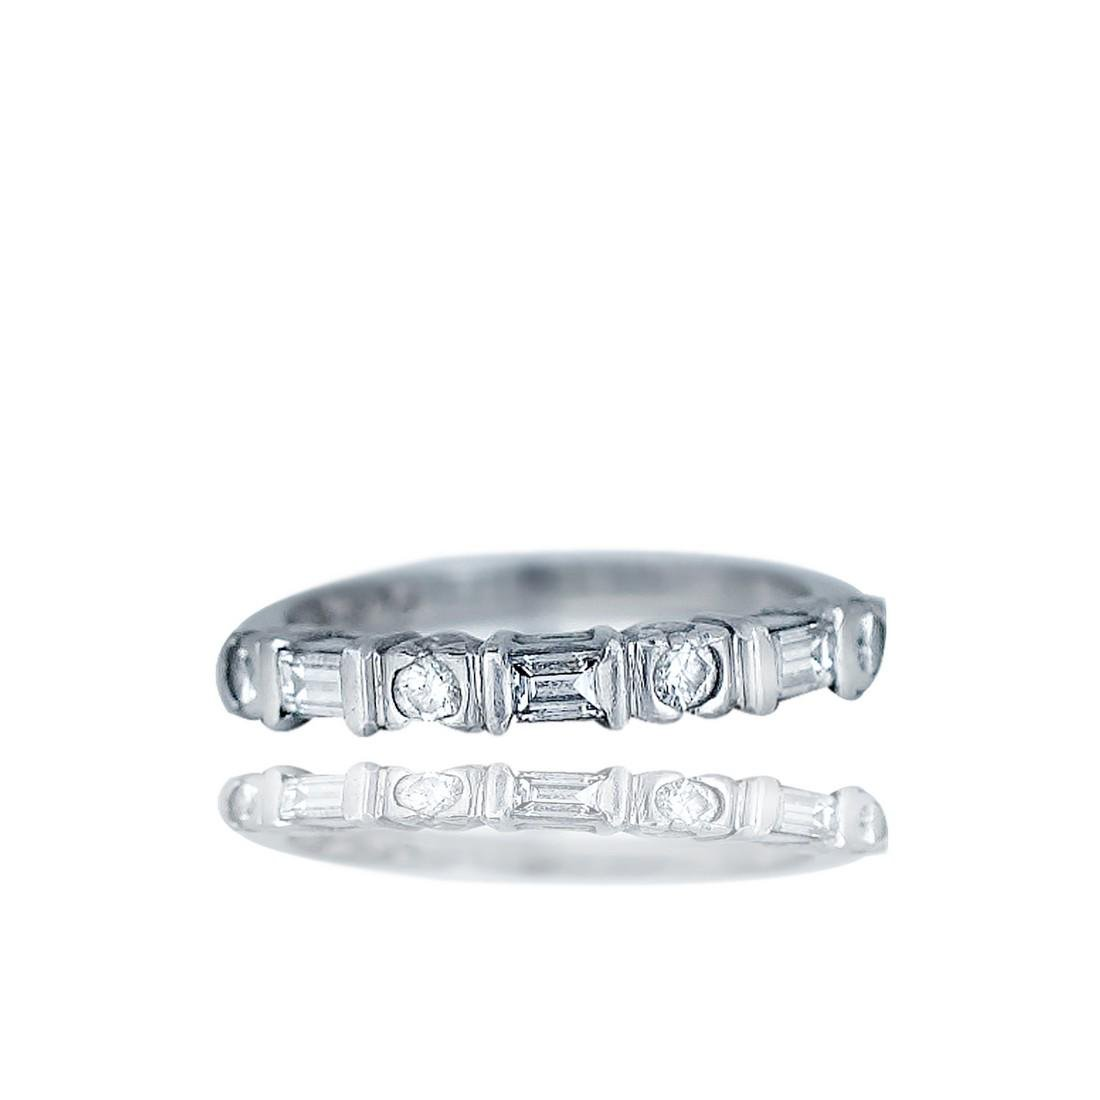 Engagement band with round and princess cut alternating